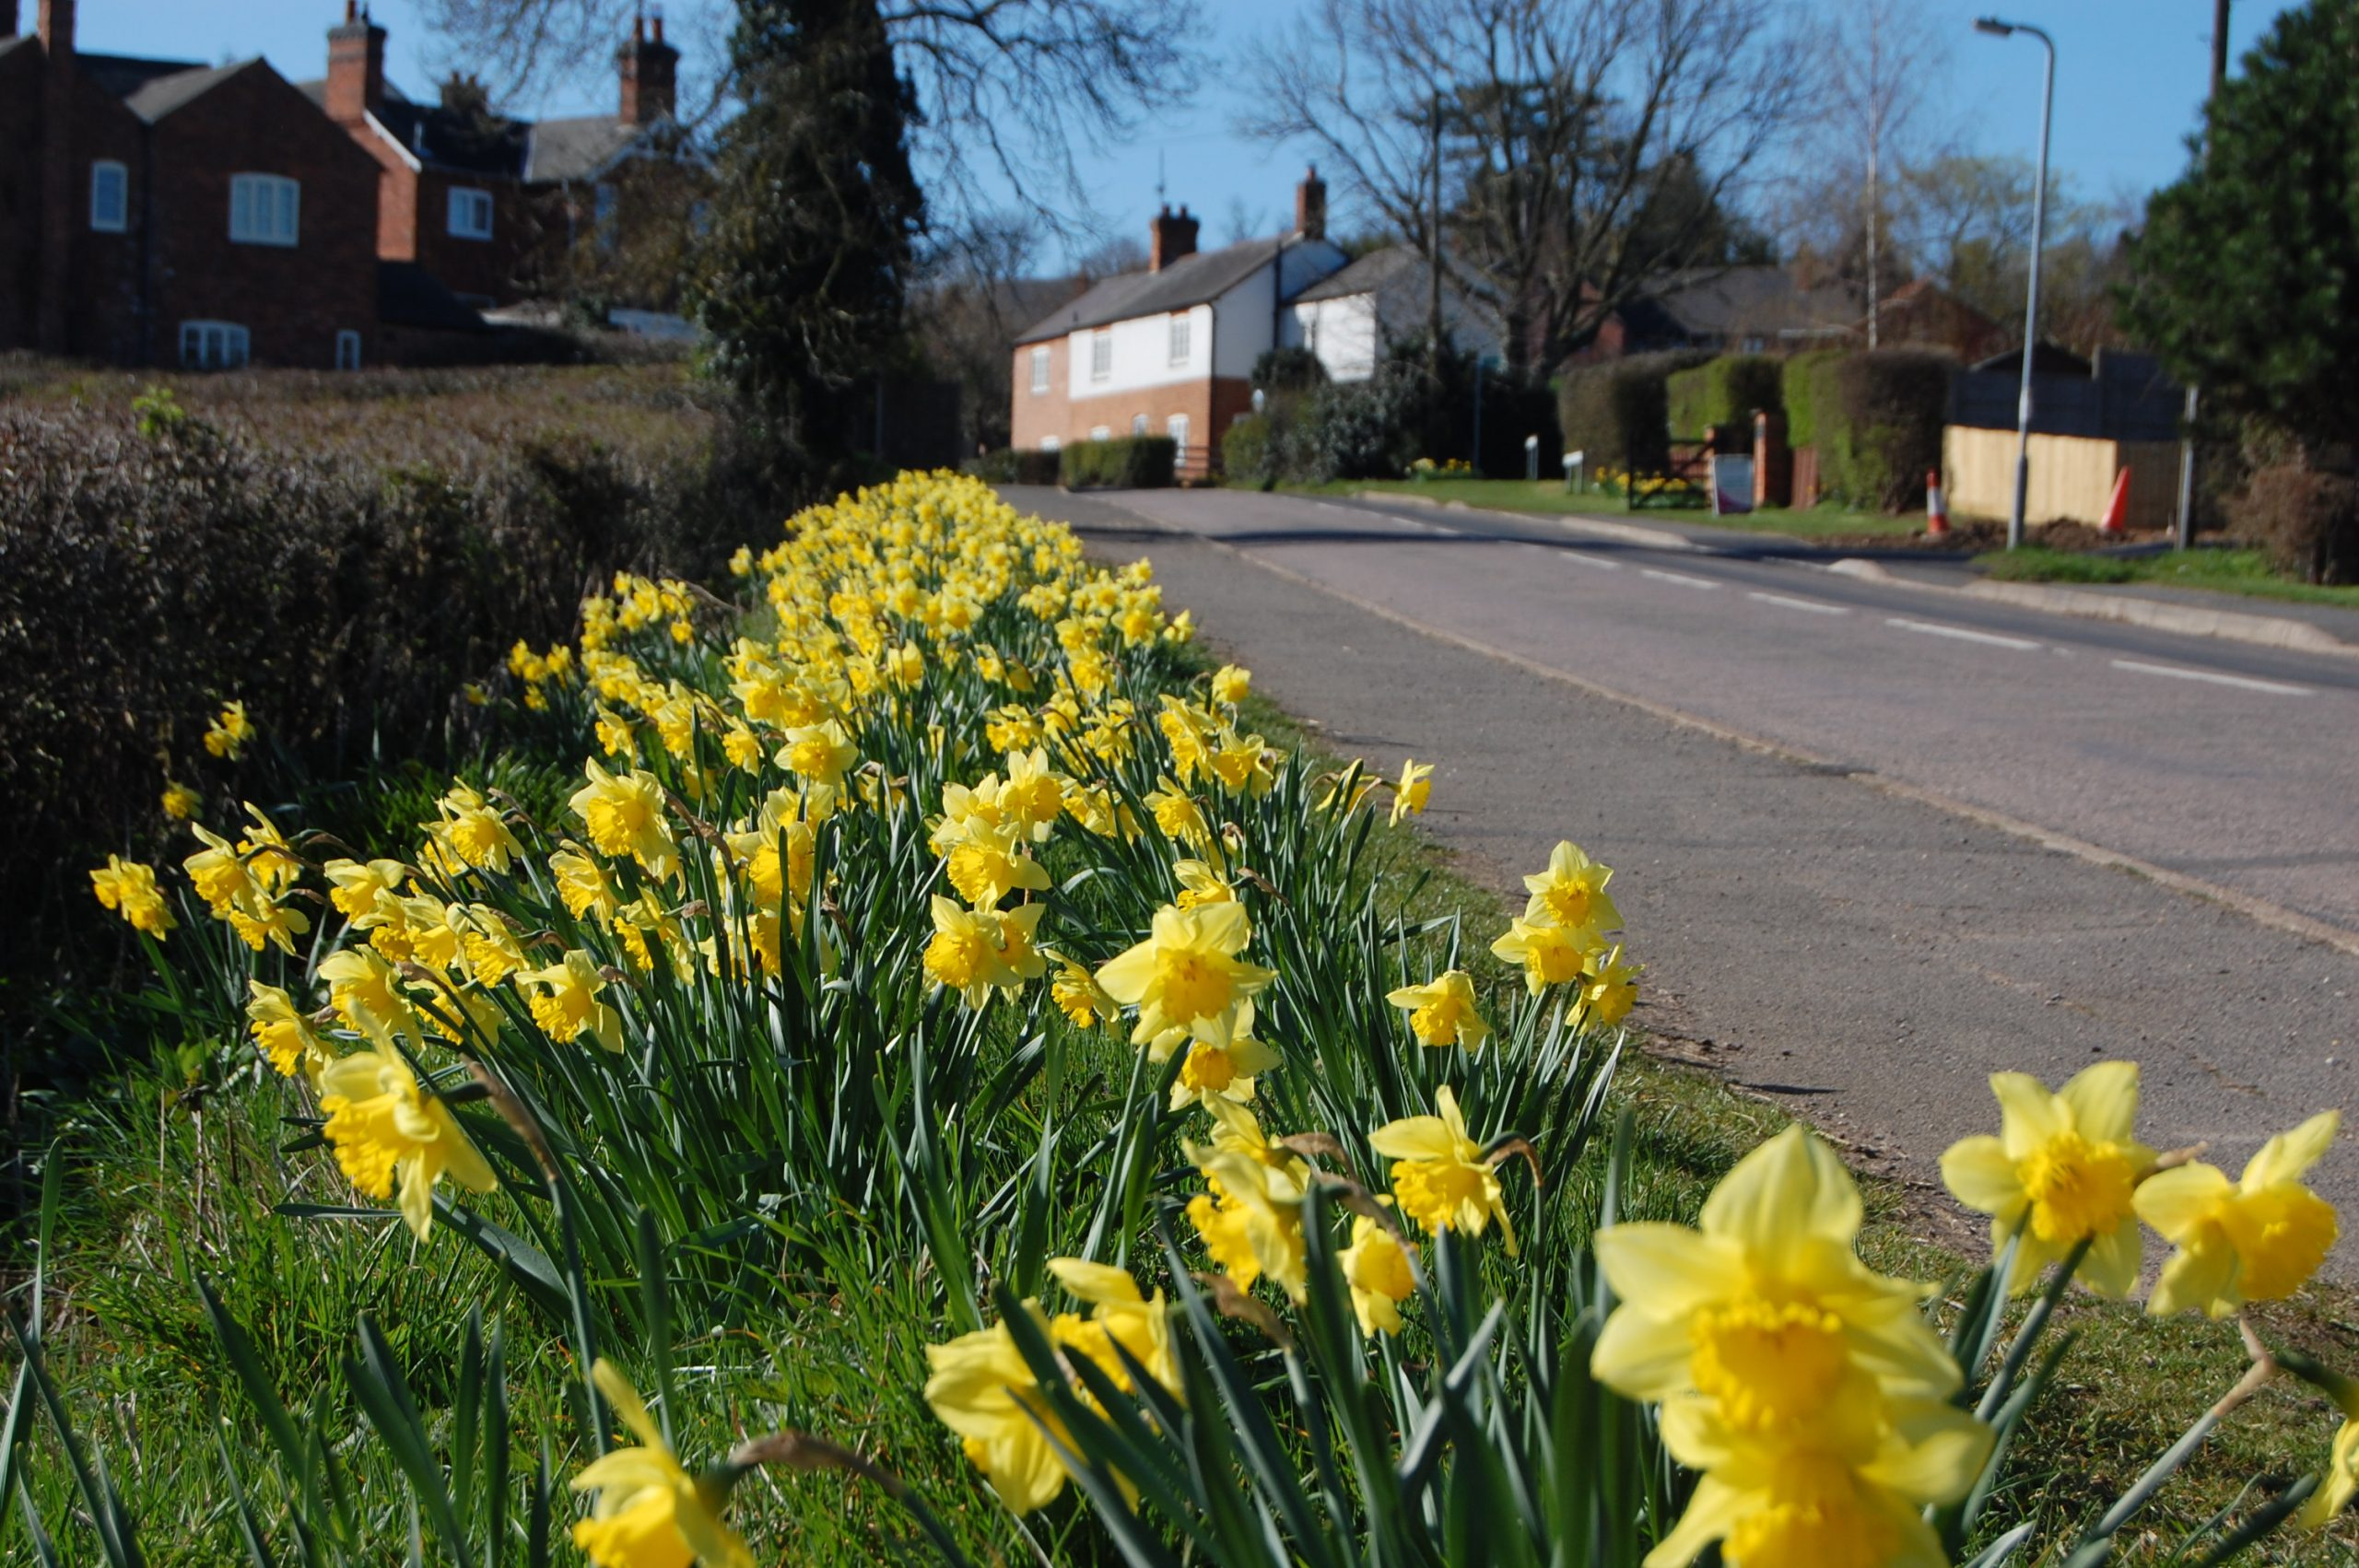 Daffodils by Harborough Road